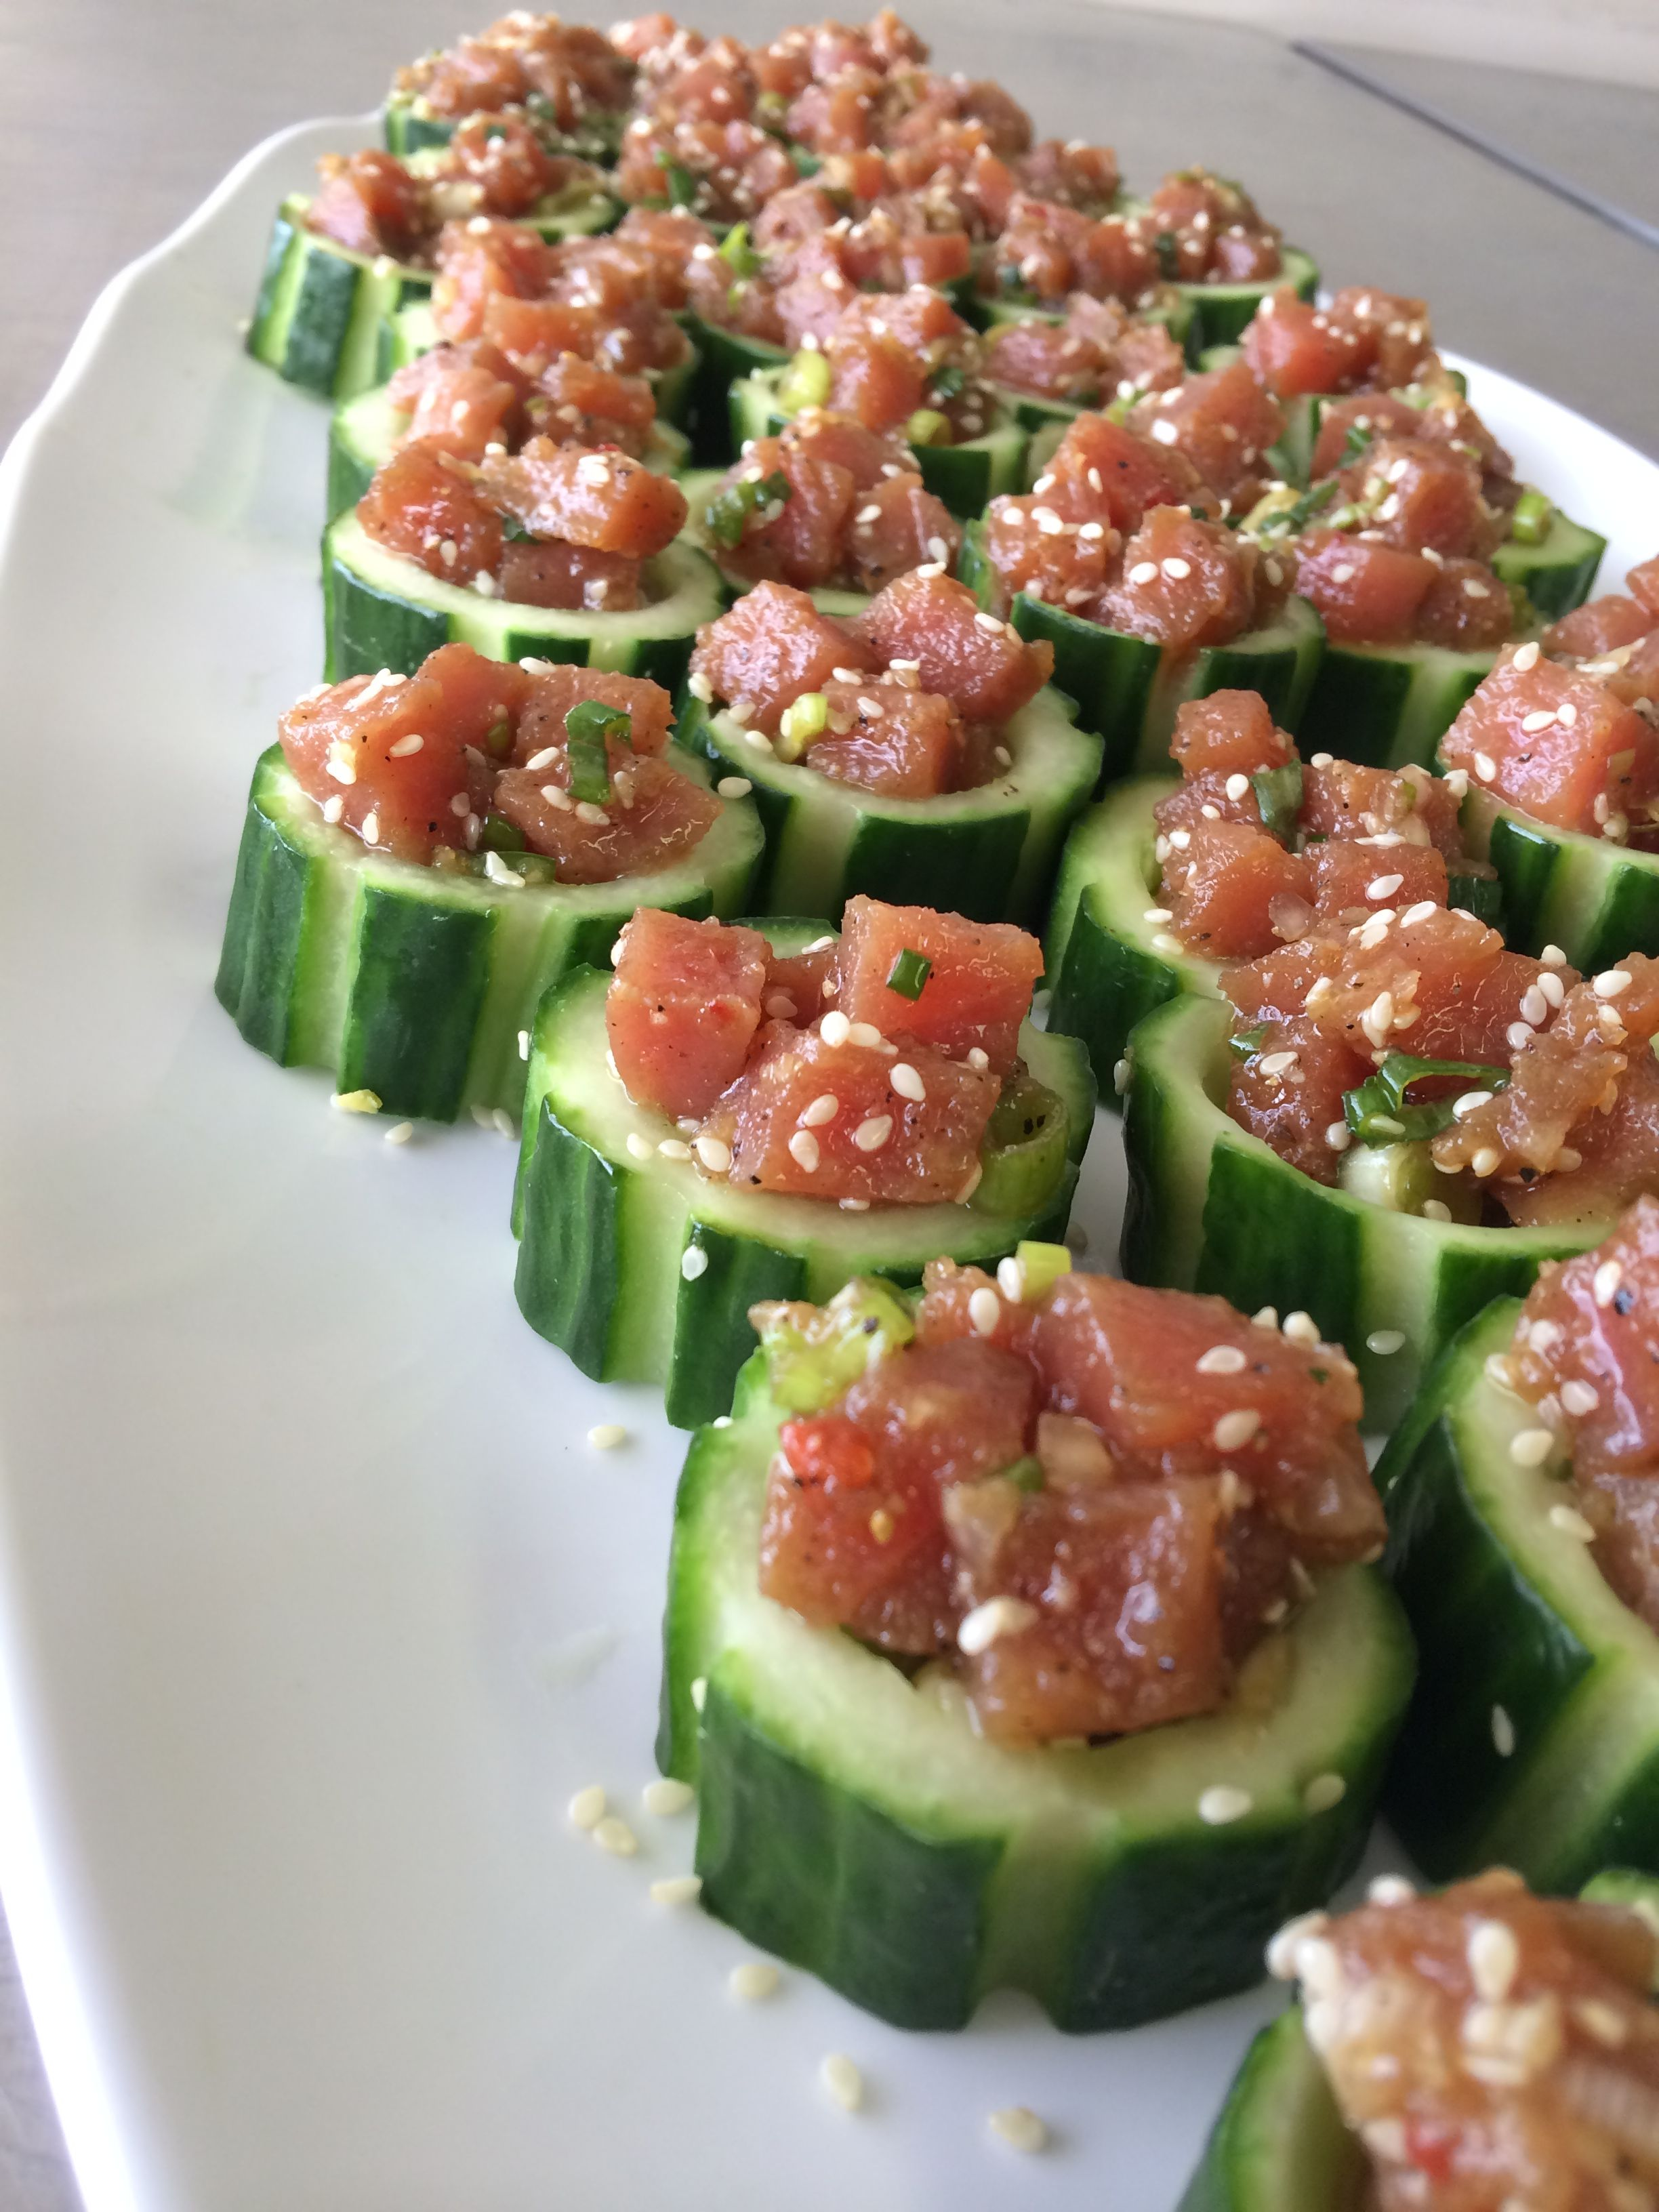 Chilled cucumber cups filled with Ahi Tuna, green onions, and topped with toasted sesame seeds #fresh